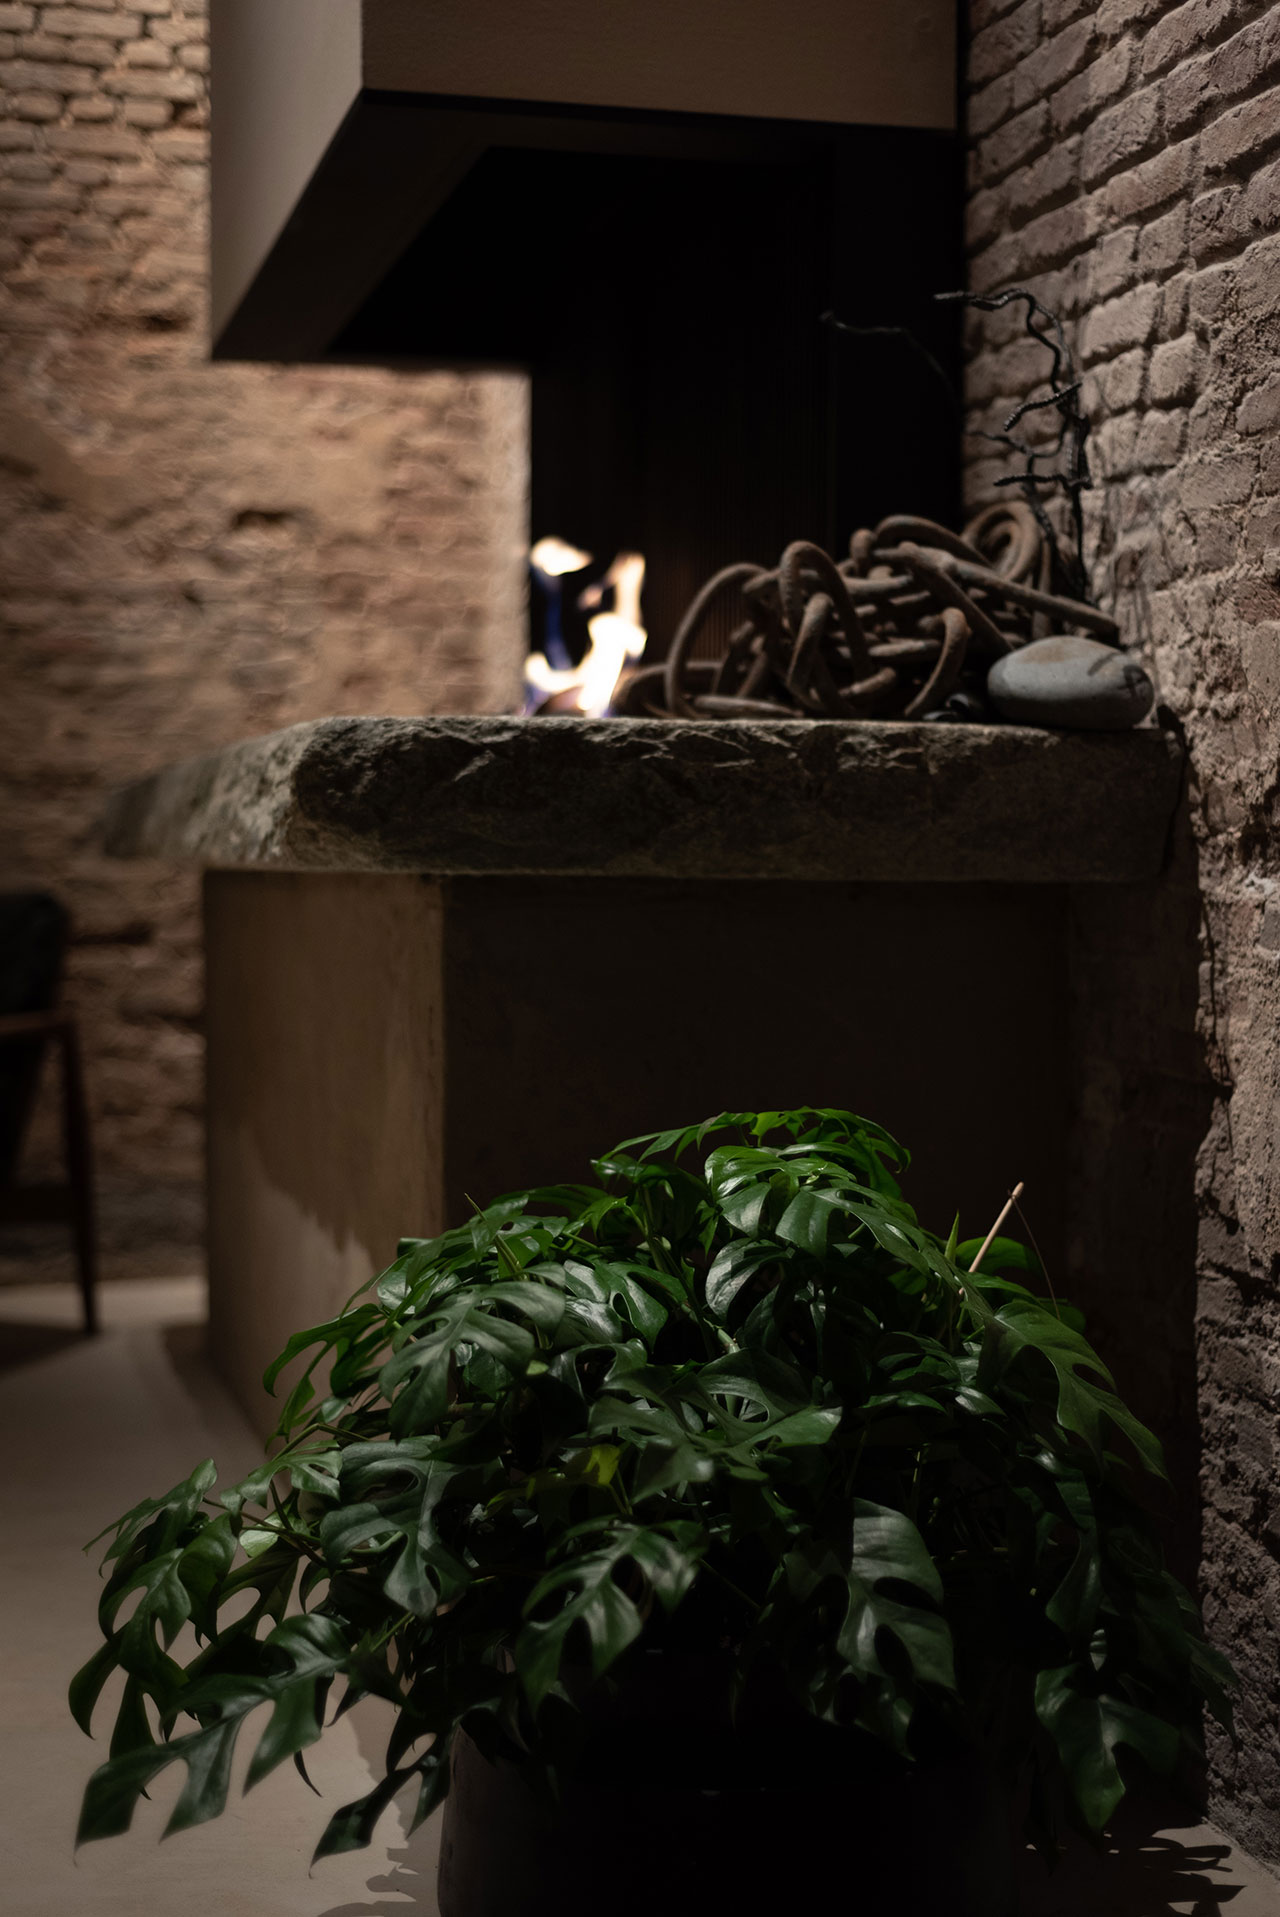 STABLE restaurant designed by Dieter Vander Velpen. Fireplace designed by Arno De Clerck. Photo by Patricia Goijens.